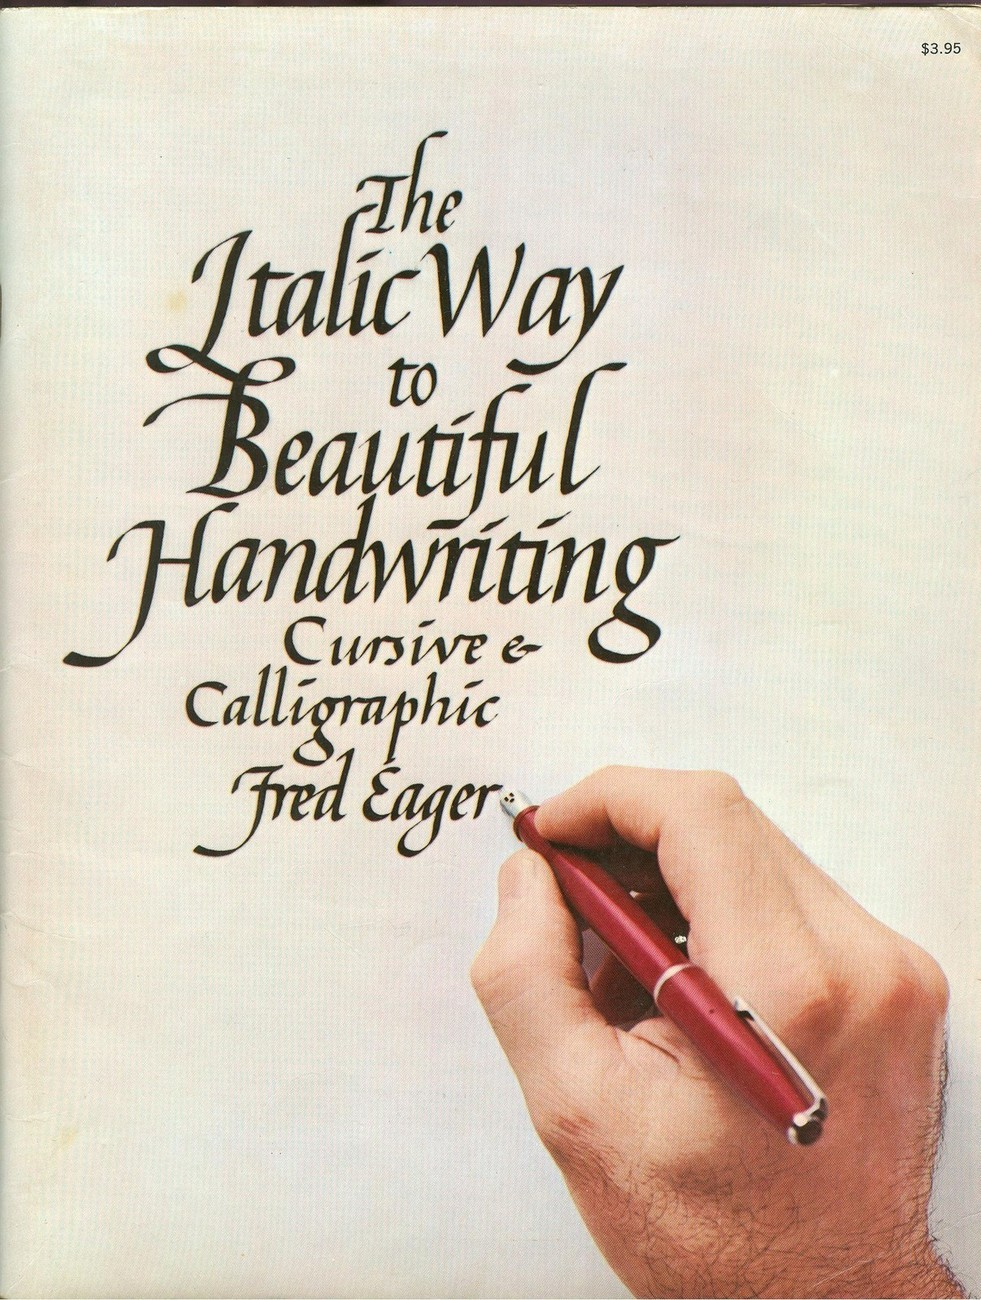 The Italic Way to Beautiful Handwriting:Cursive & Calligraphic by Fred Eager;PB